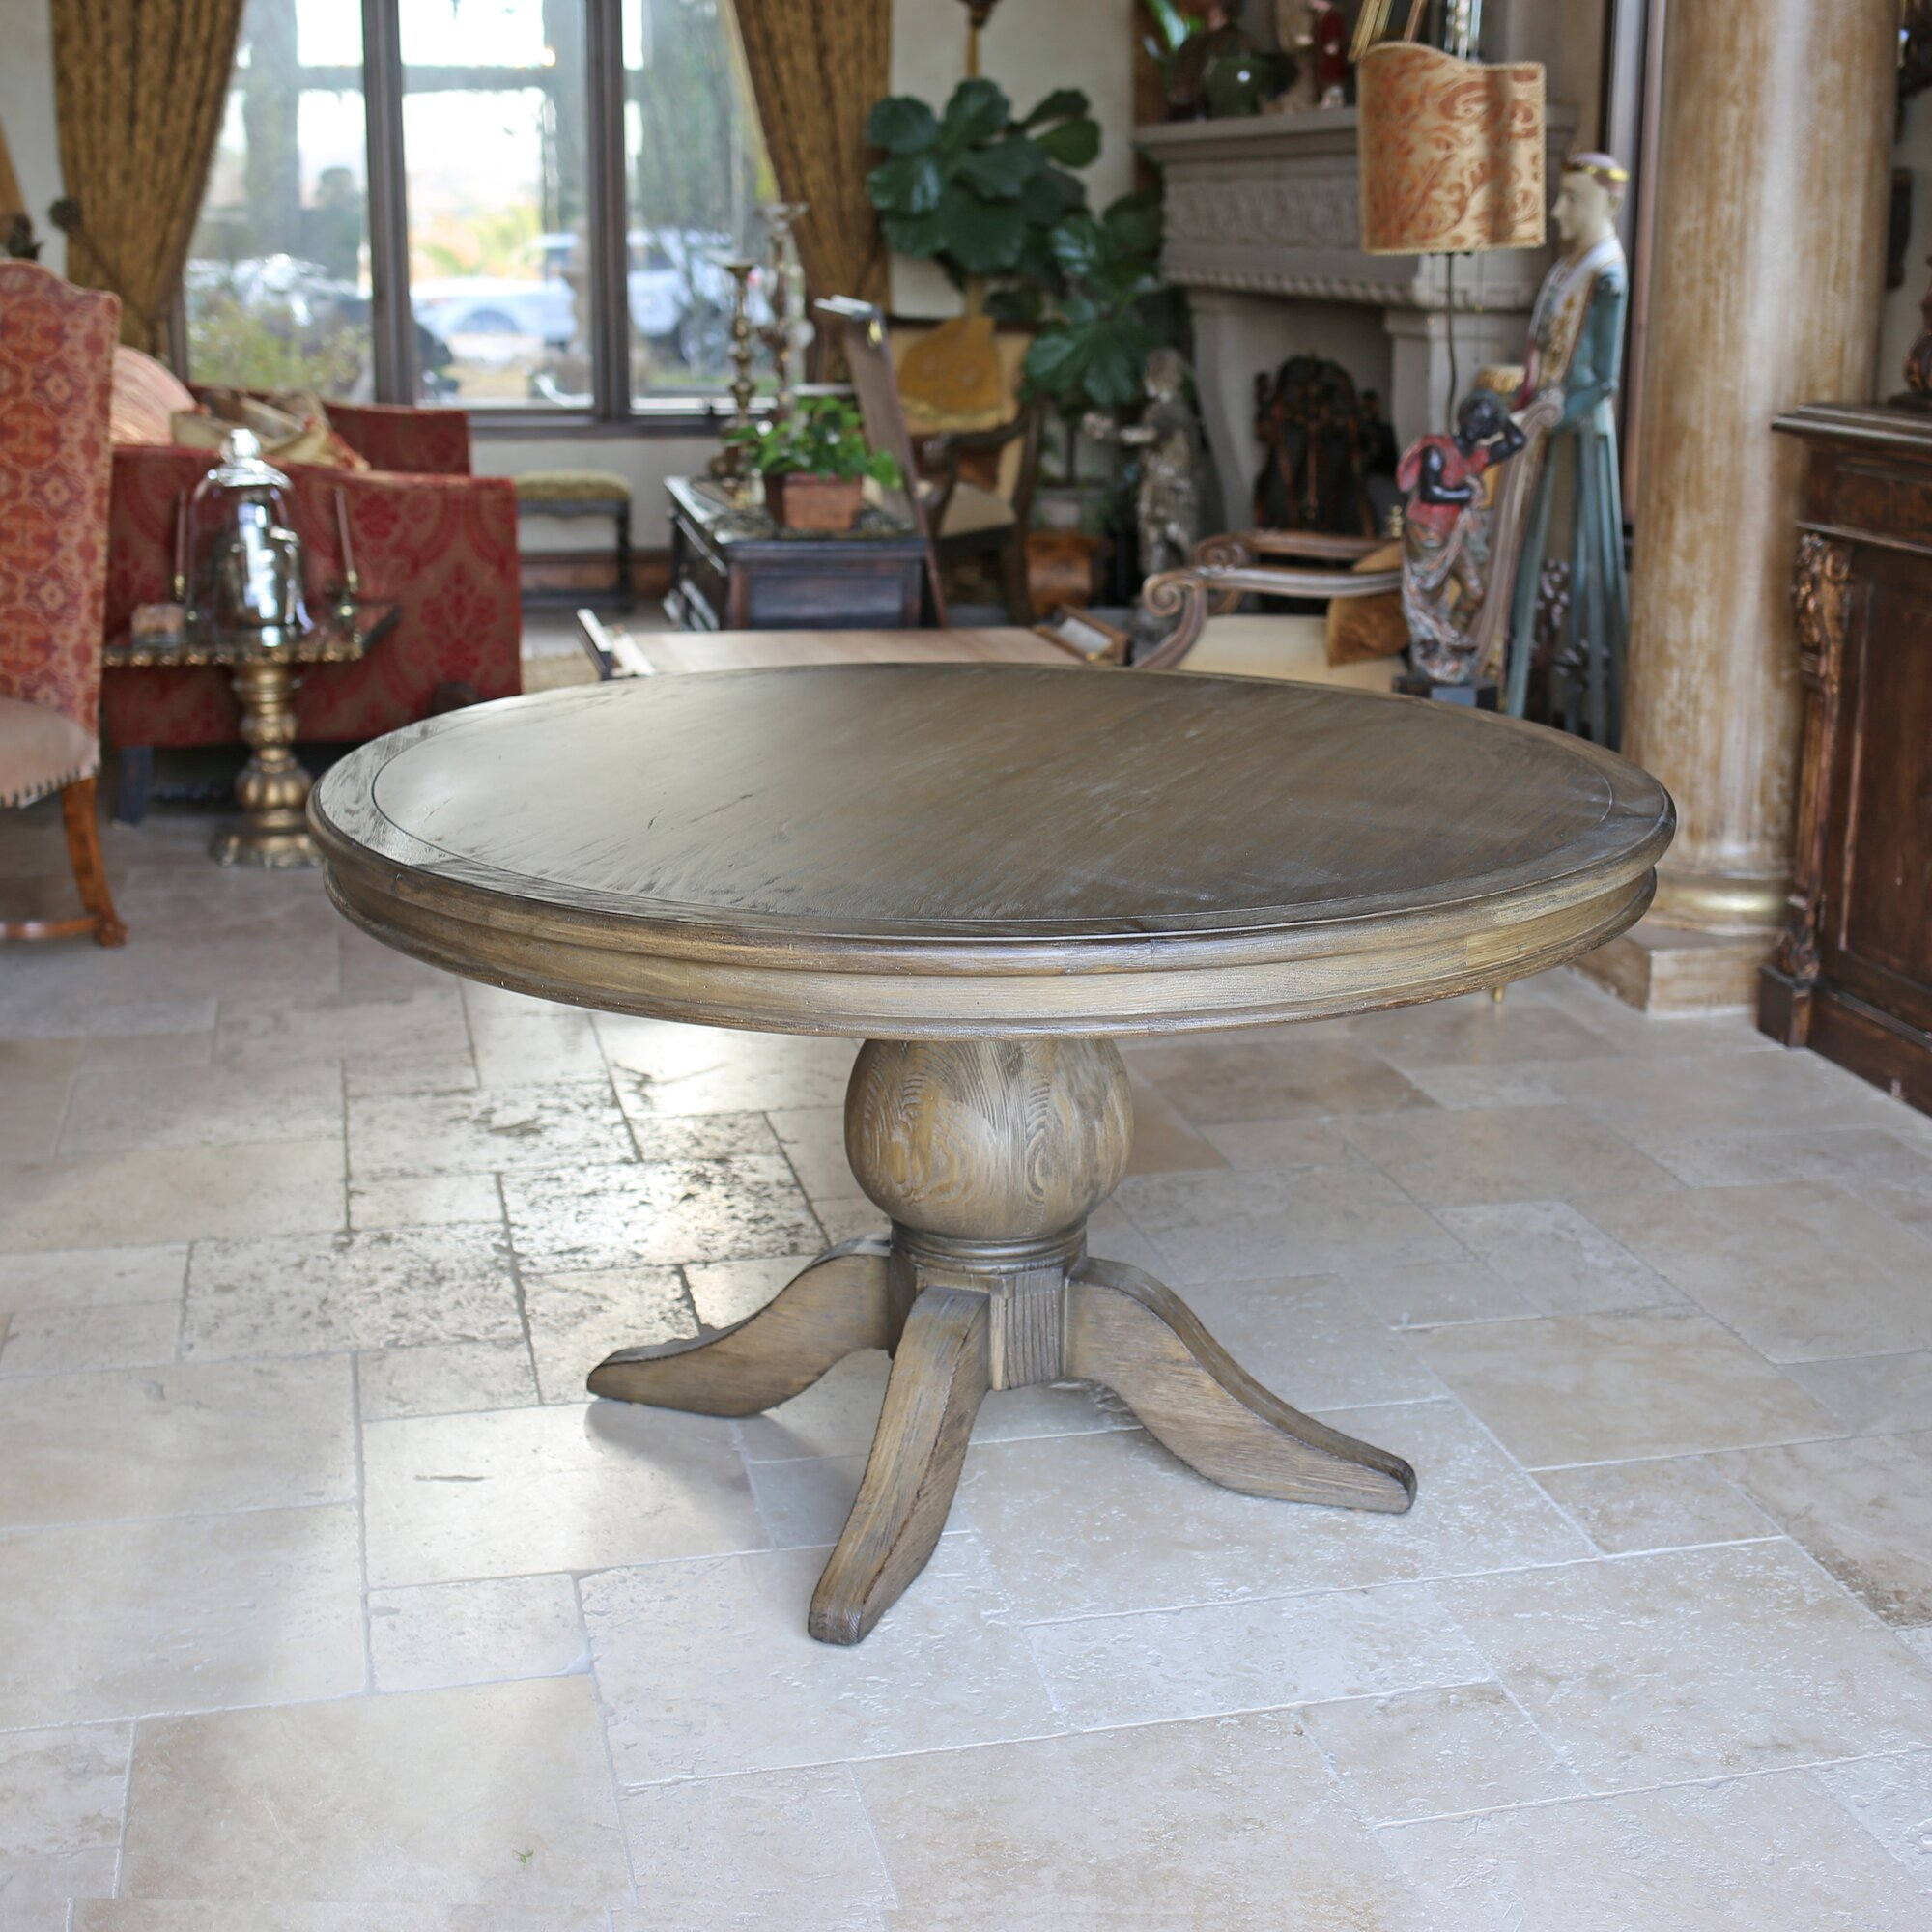 Reclaimed wood round dining table - Reclaimed Wood Dining Table Round